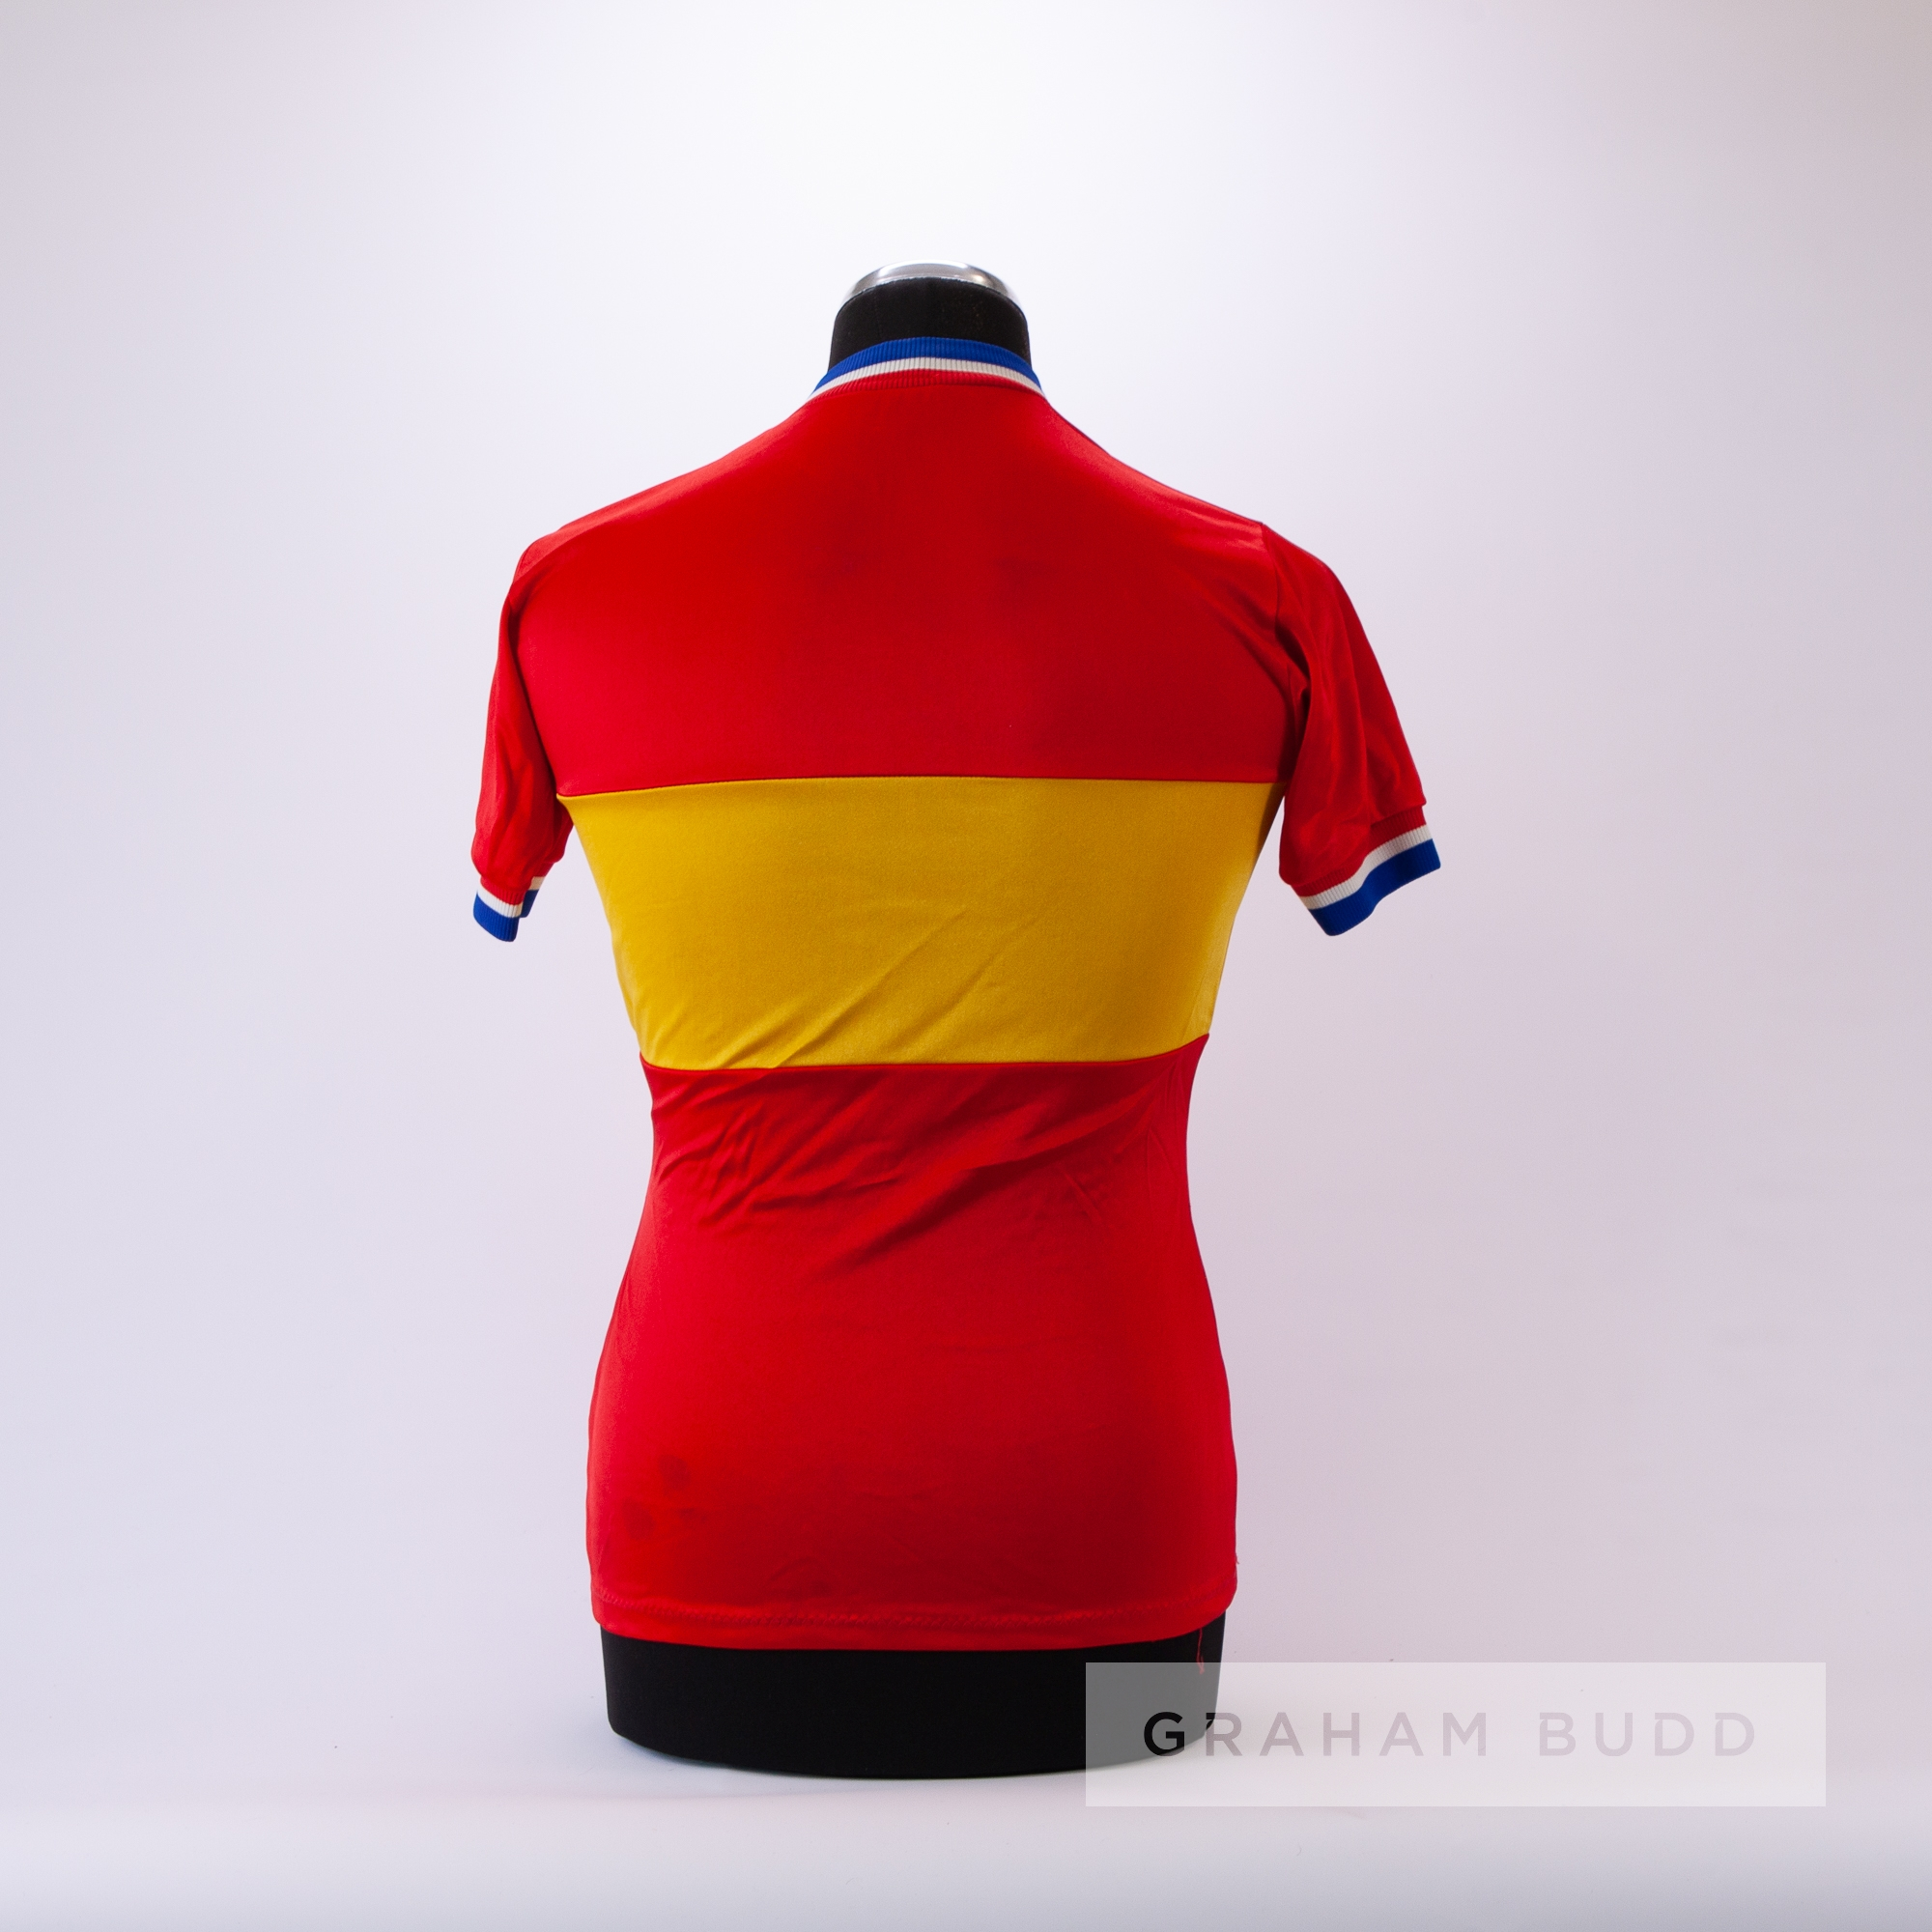 1971 red and yellow vintage Italian De Rigueur Cycling track and trial race jersey, scarce, - Image 2 of 2